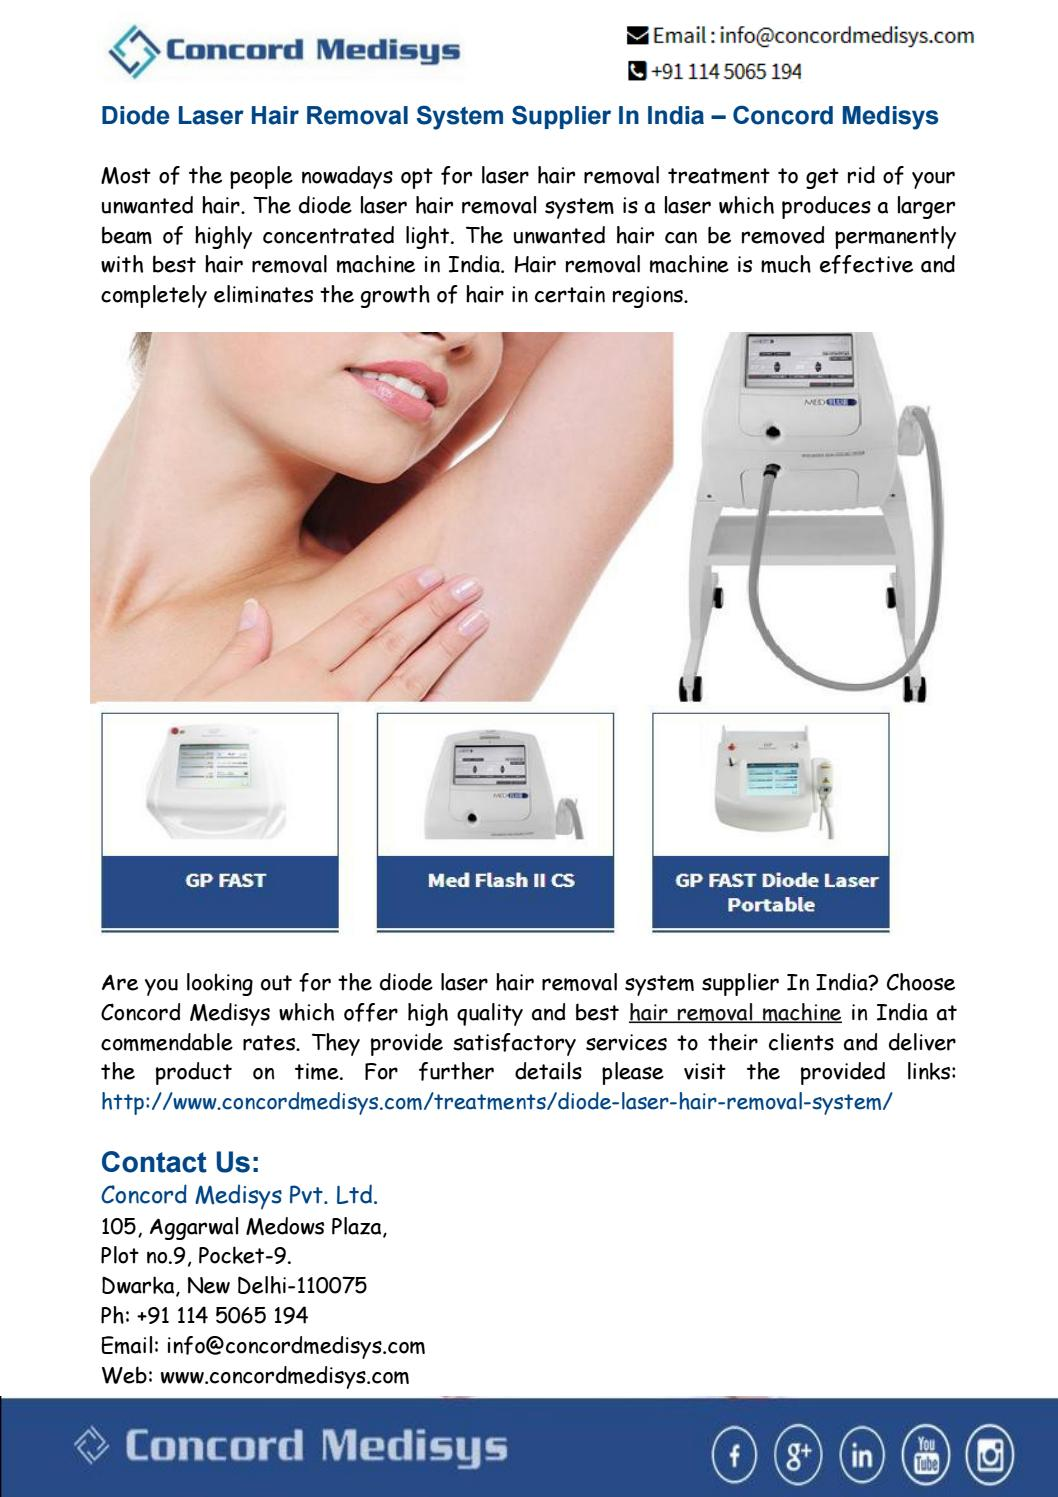 Diode Laser Hair Removal Machine Supplier India By Concord Medisys